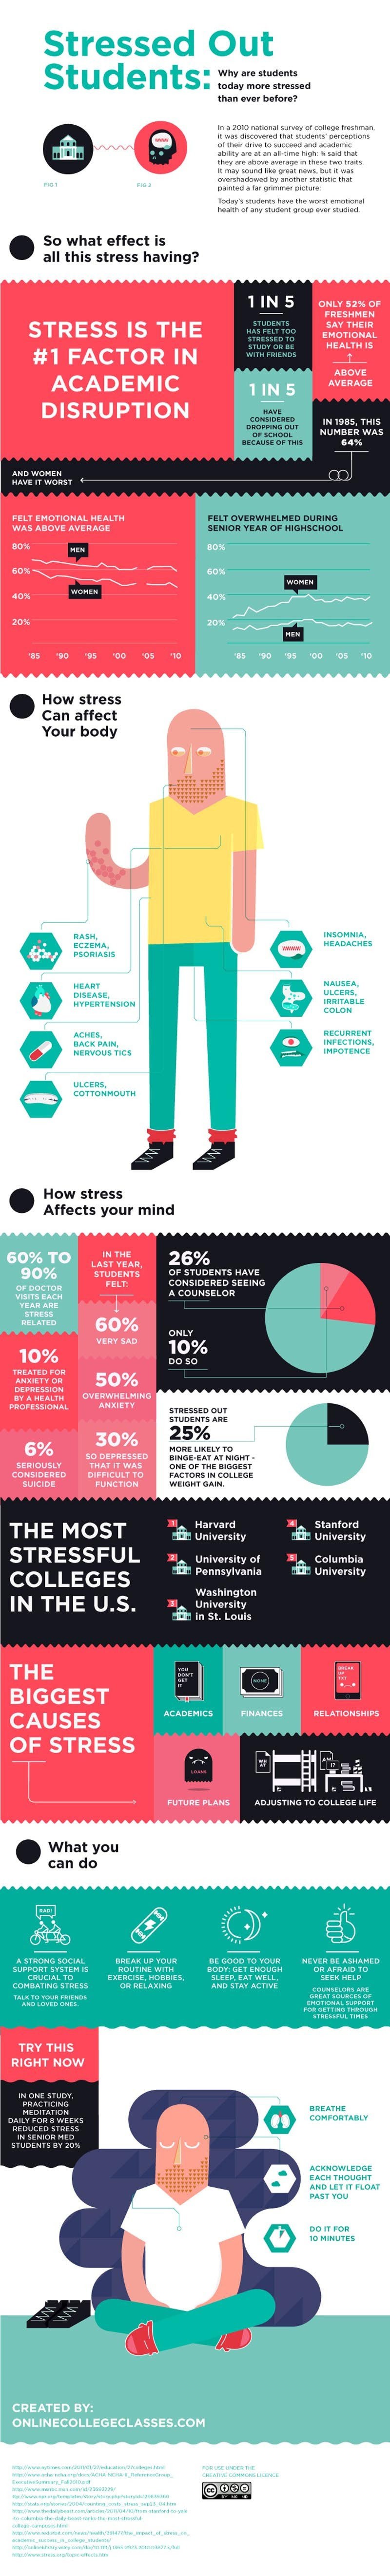 Stressed Out Students Infographic | Only Infographic